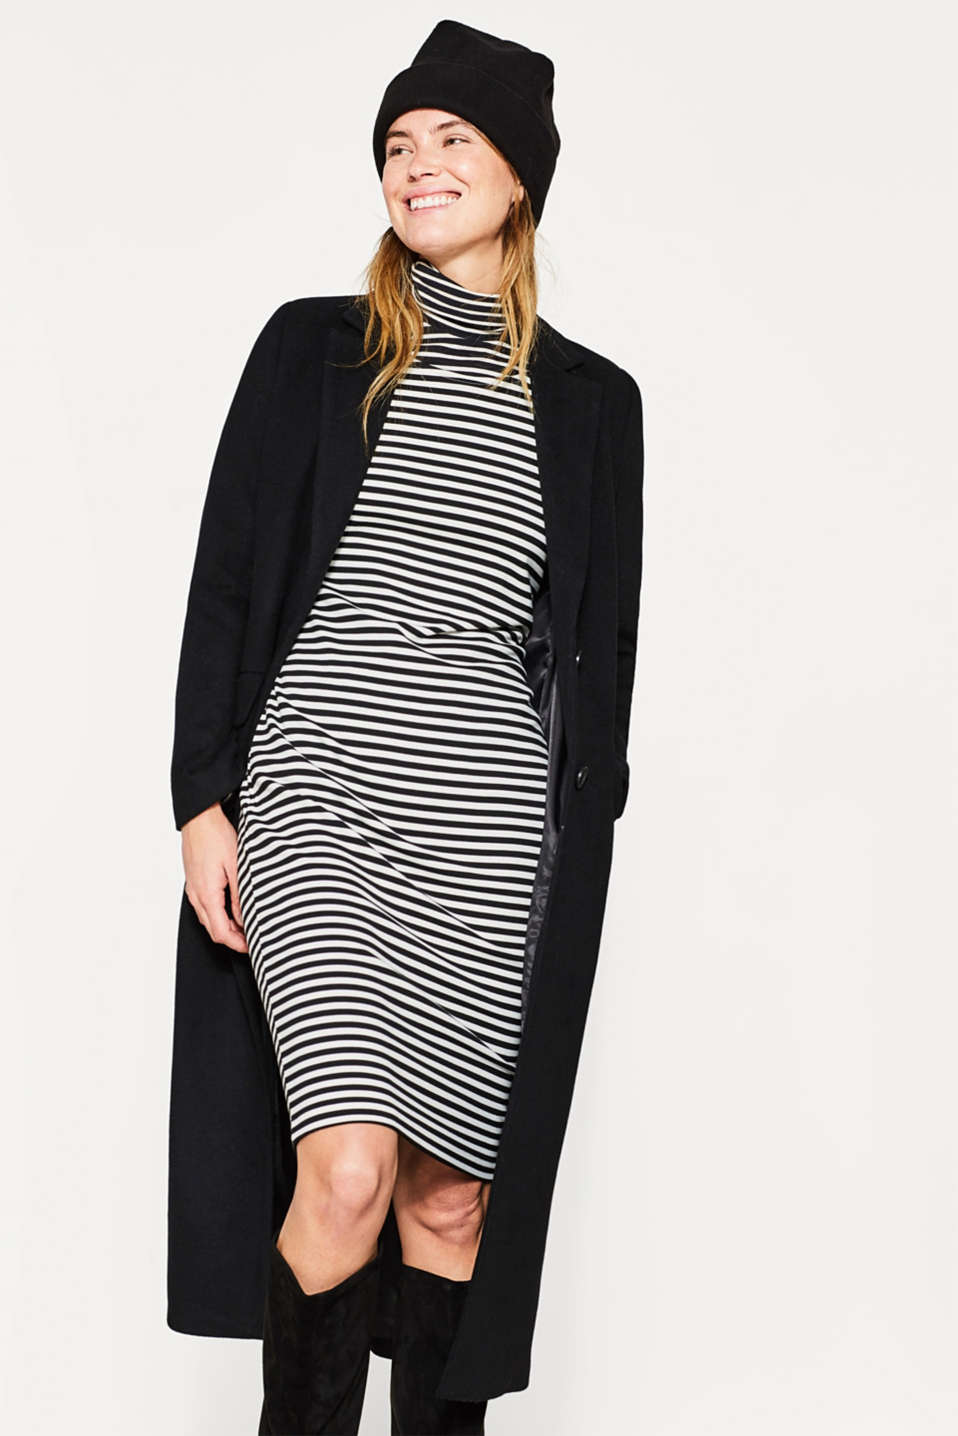 Stretch jersey dress with gathered sleeves